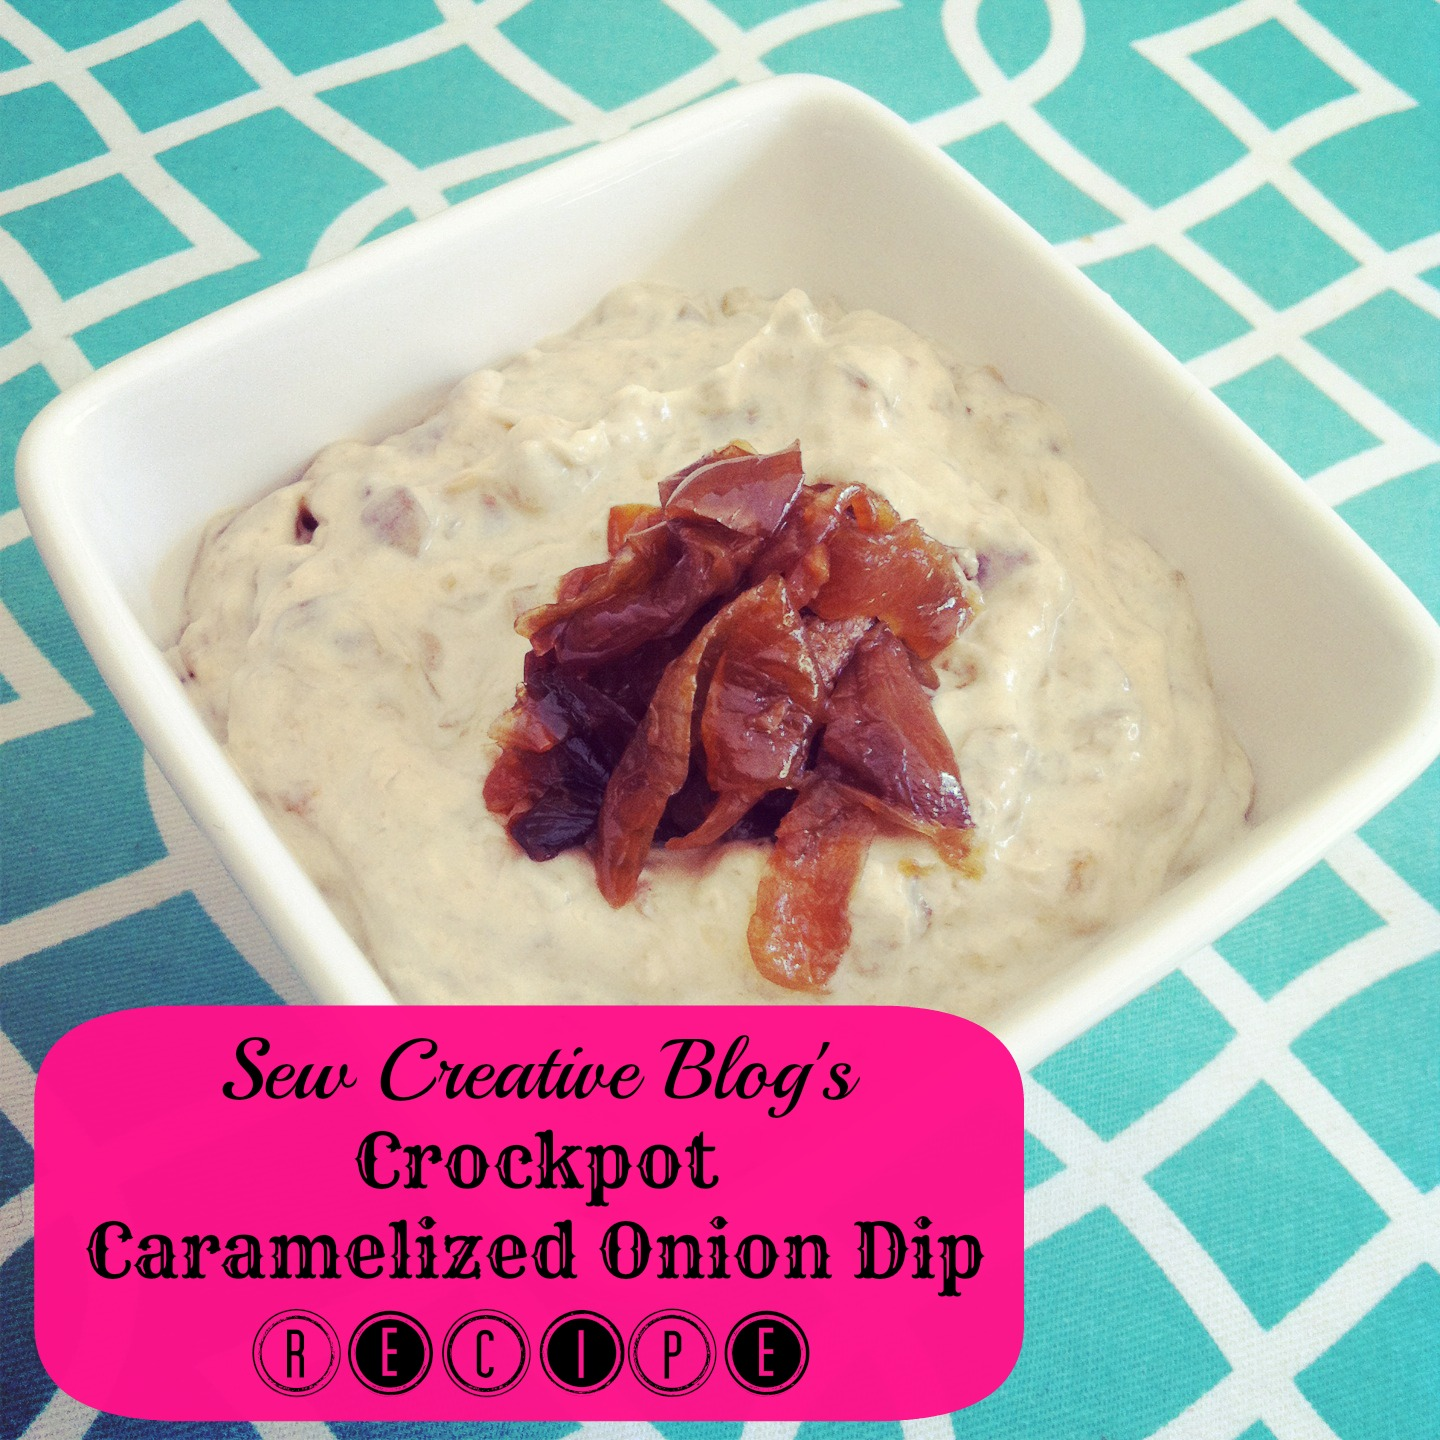 Crockpot Caramelized Onion Dip Recipe